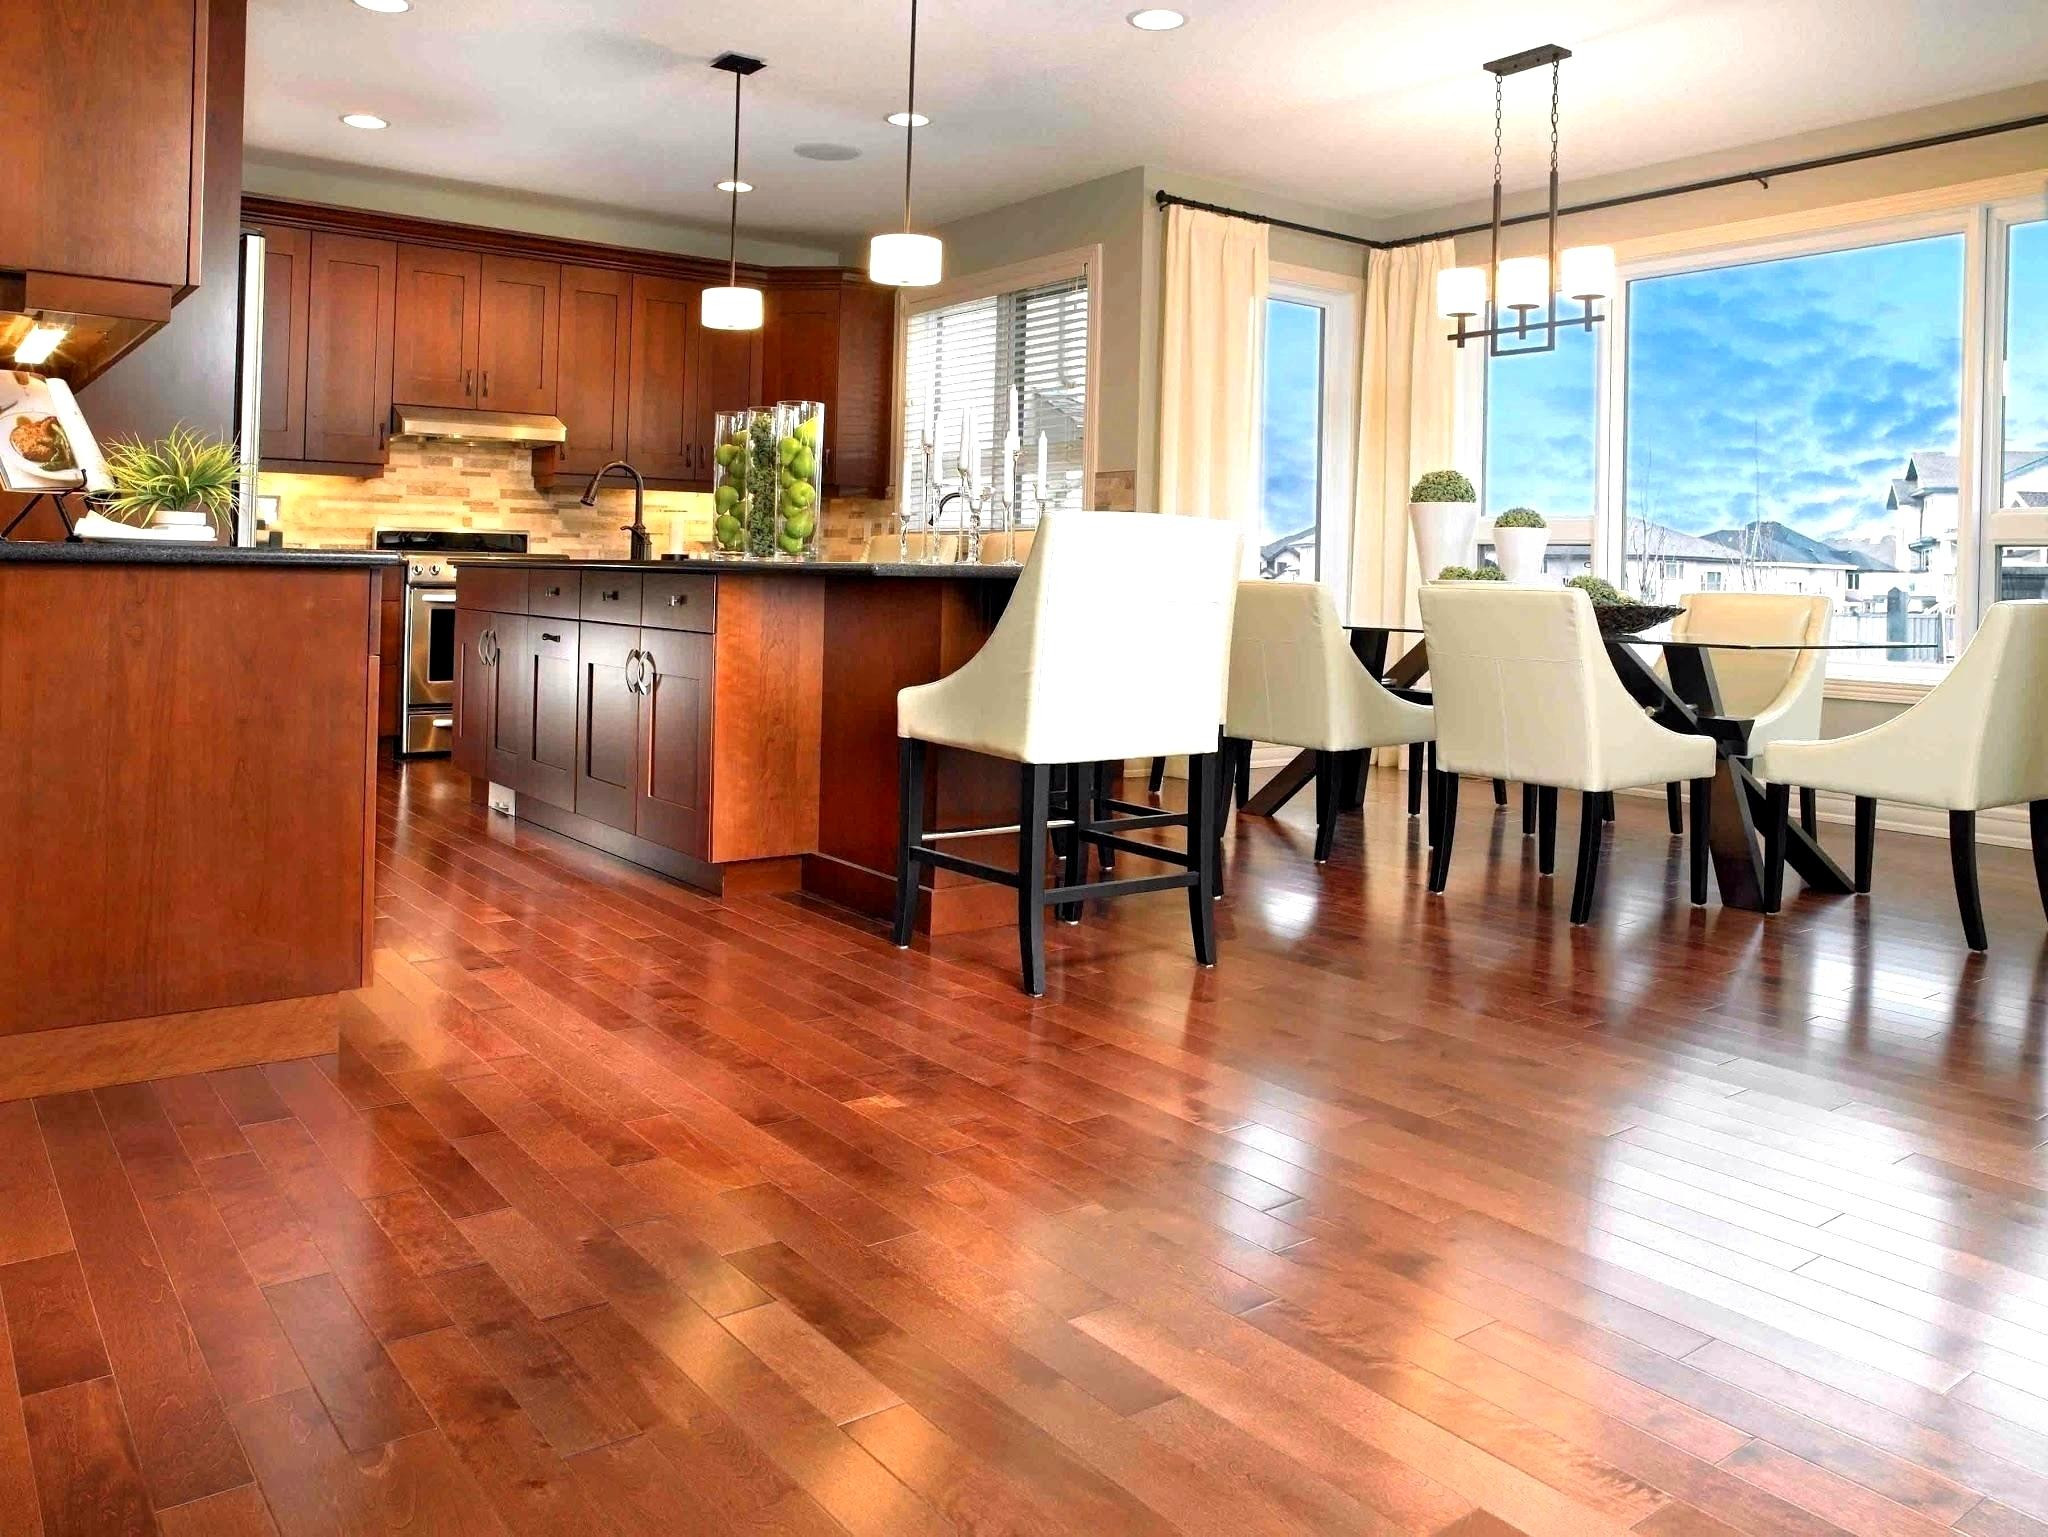 bruce hardwood flooring butterscotch color of 33 ways to create favorable kitchen design bruce hardwood floors within 33 ways to create favorable kitchen design bruce hardwood floors ideas for your apartment edmaps home decoration